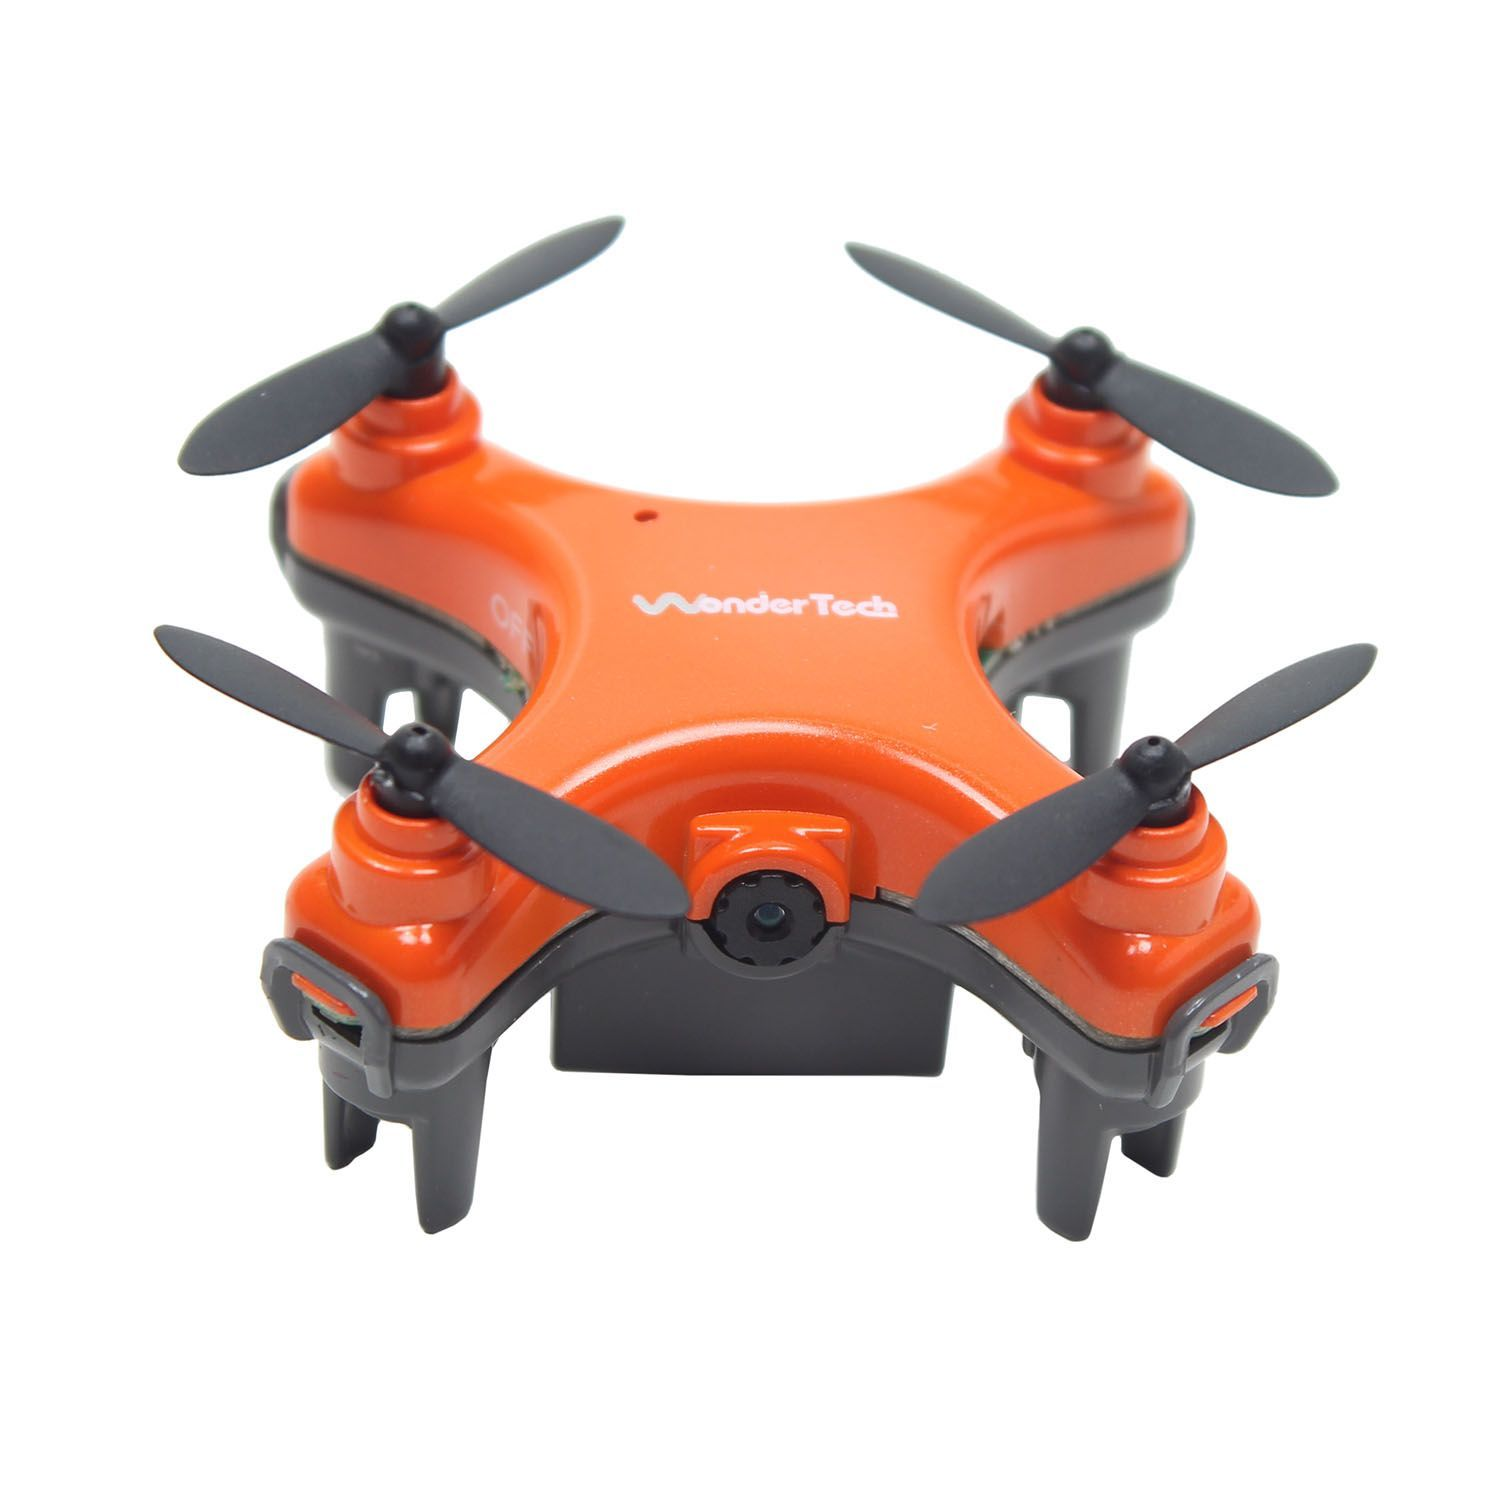 WonderTech Orion Drone with HD Video Camera and Free Bag (Assorted Colors) - Orange